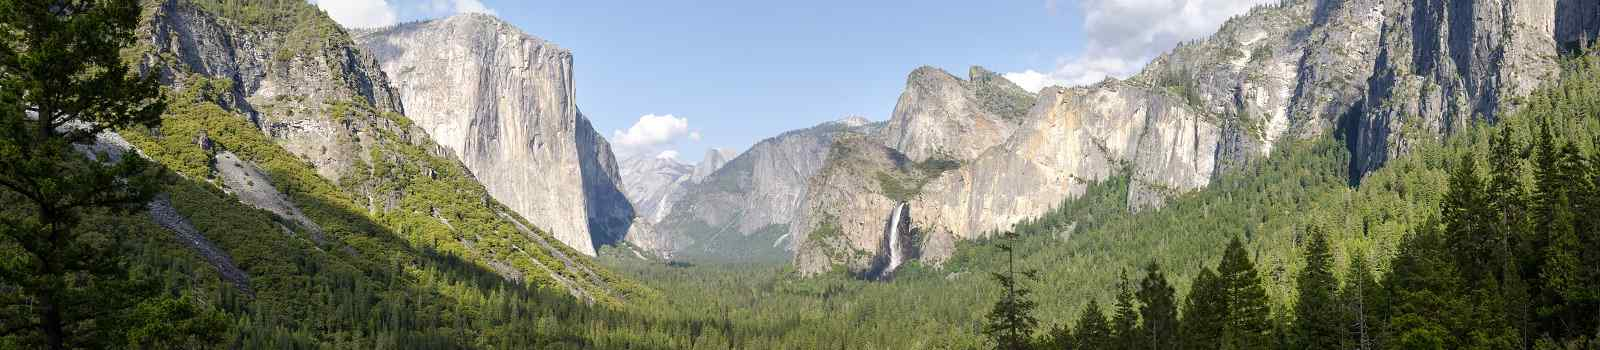 BUS-WEST-FEINE-ART  Yosemite NationalPark with Bridalveil waterfall 111147029